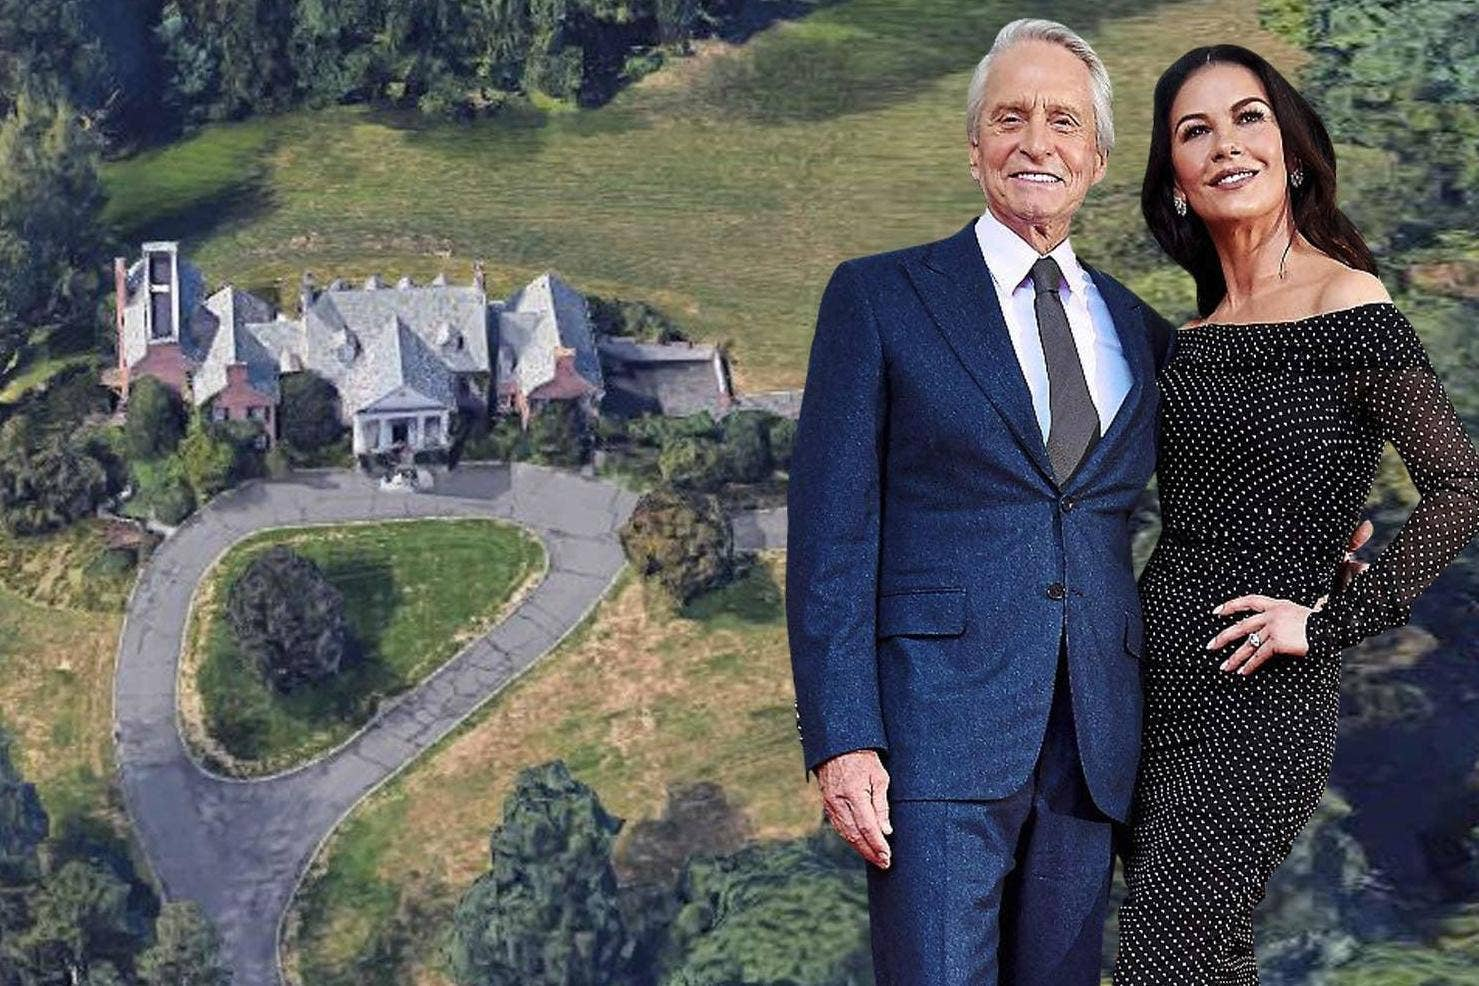 Catherine Zeta-Jones and Michael Douglas's £13m property trade-in